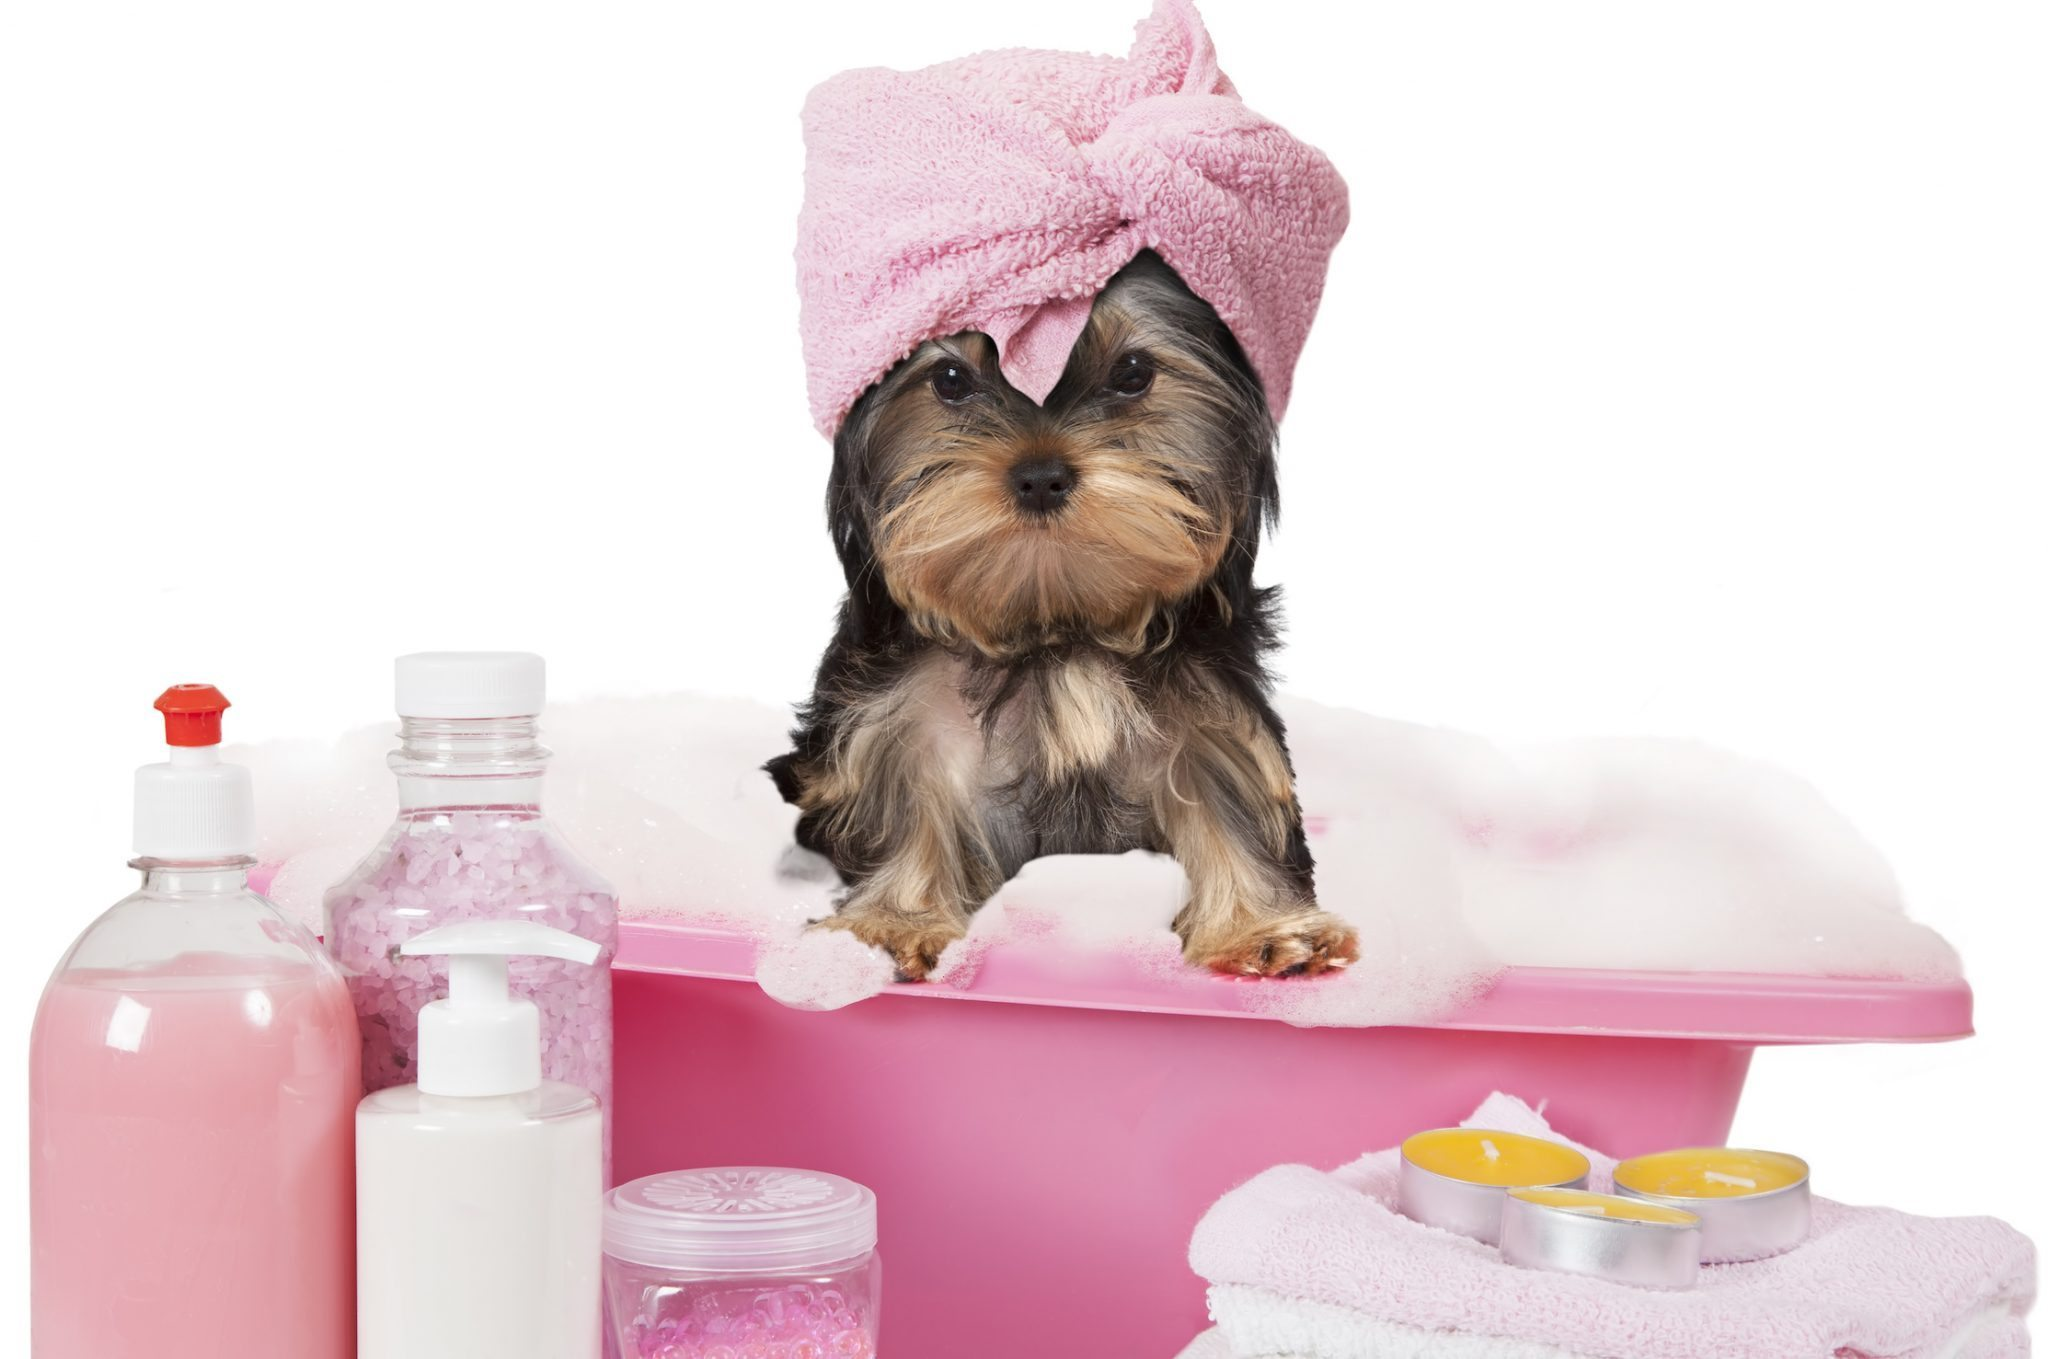 Yorkshire terrier taking a bath